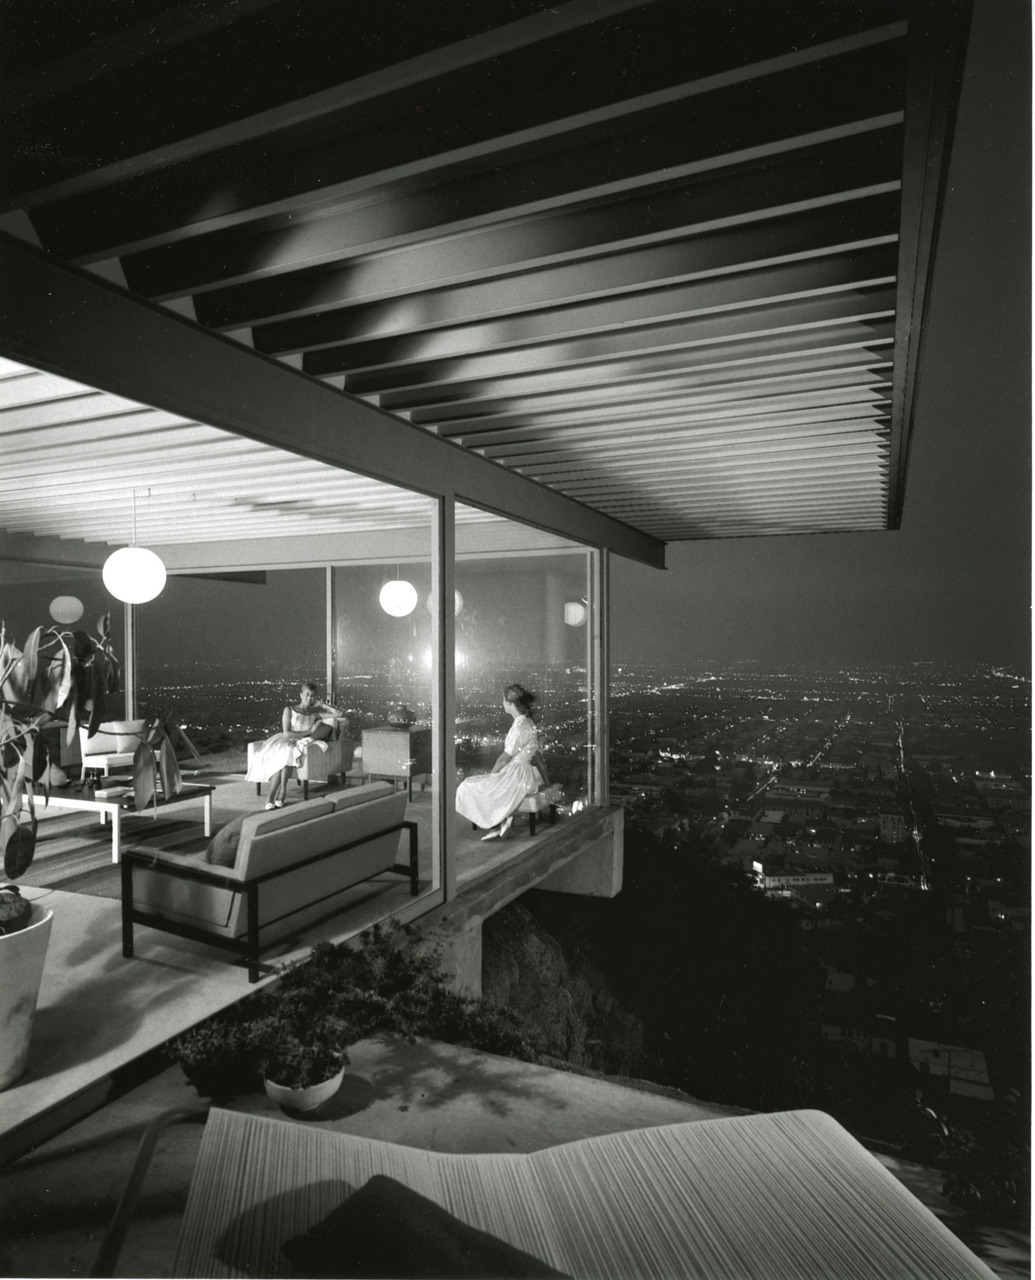 semry:  Case Study House #22, 1960  Julius Shulman (1910-2005)  Auto reblog for Julius Shulman content